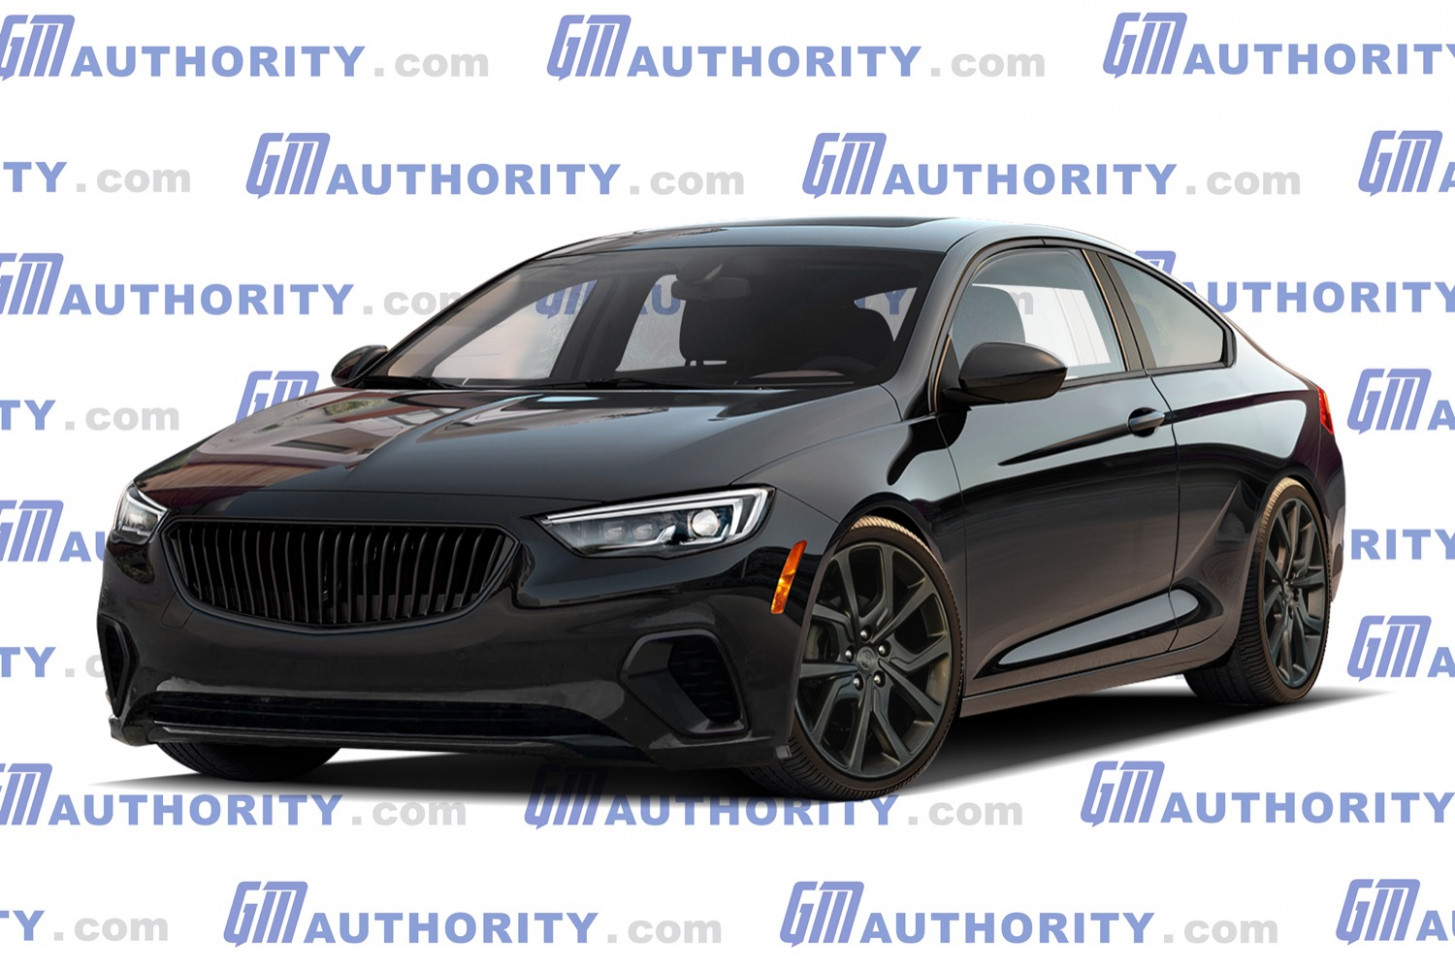 Release 2022 Buick Grand National Price